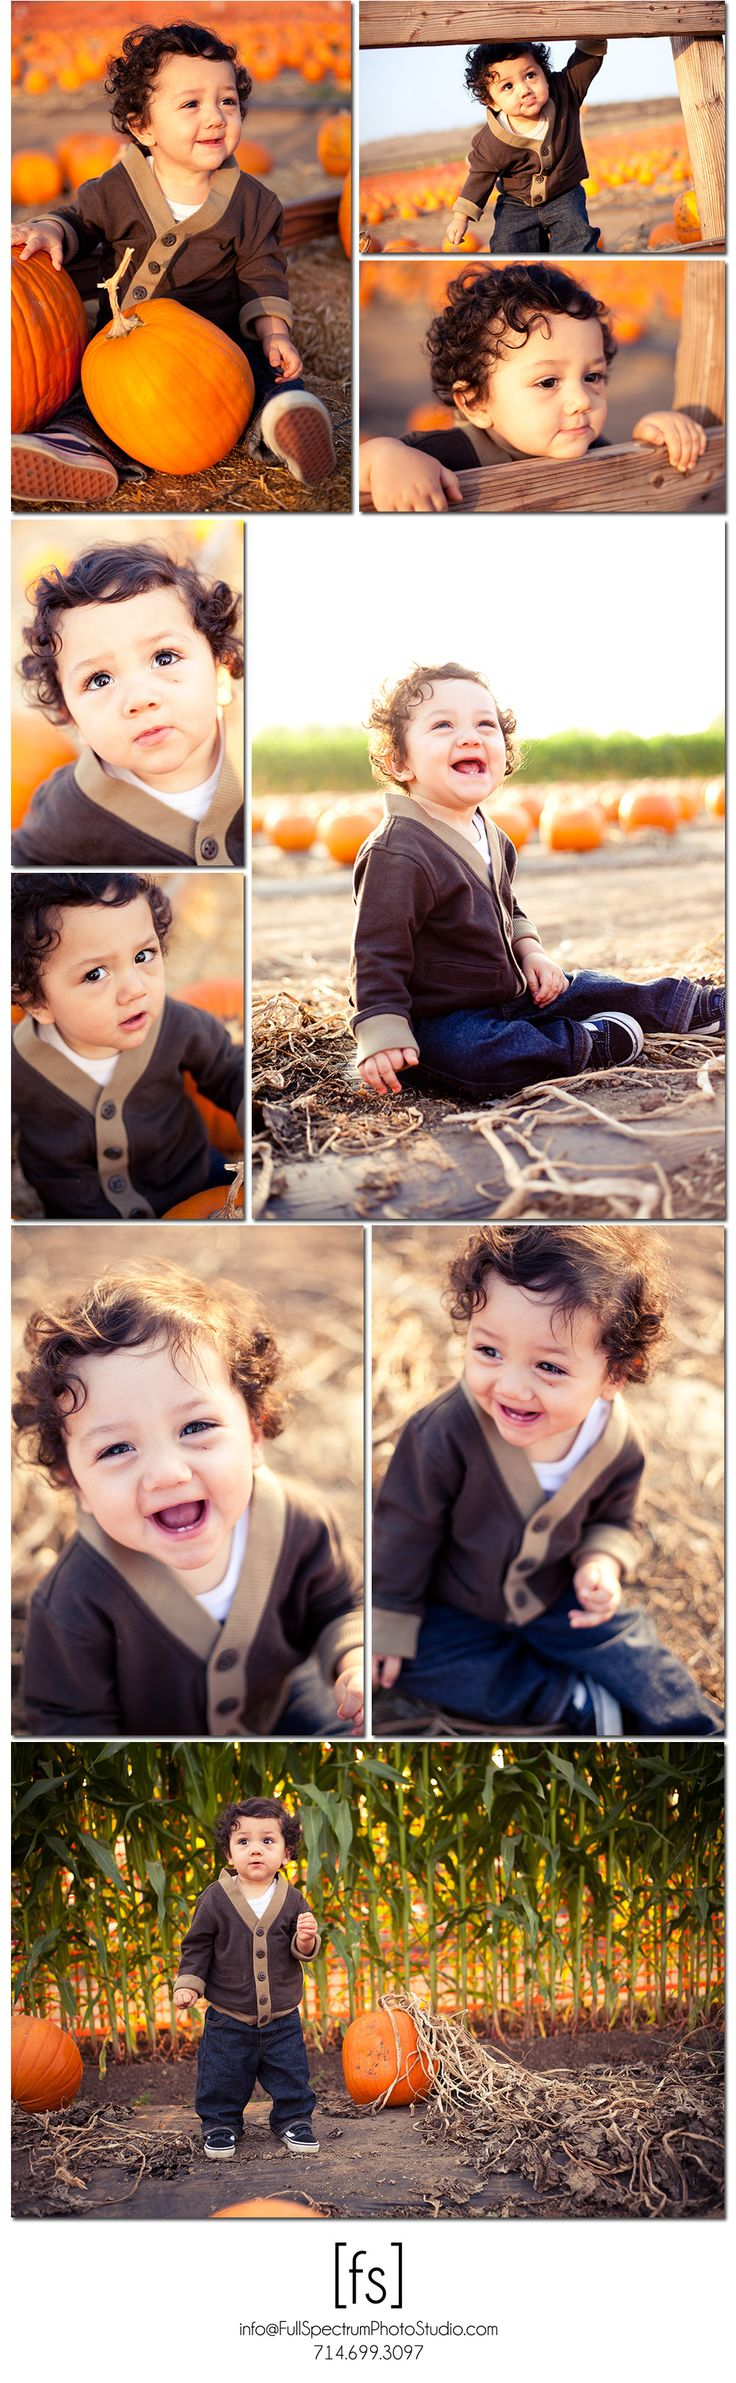 Cant wait until next weekend when I get to take Malorie to the Pumpkin Patch and take her pictures